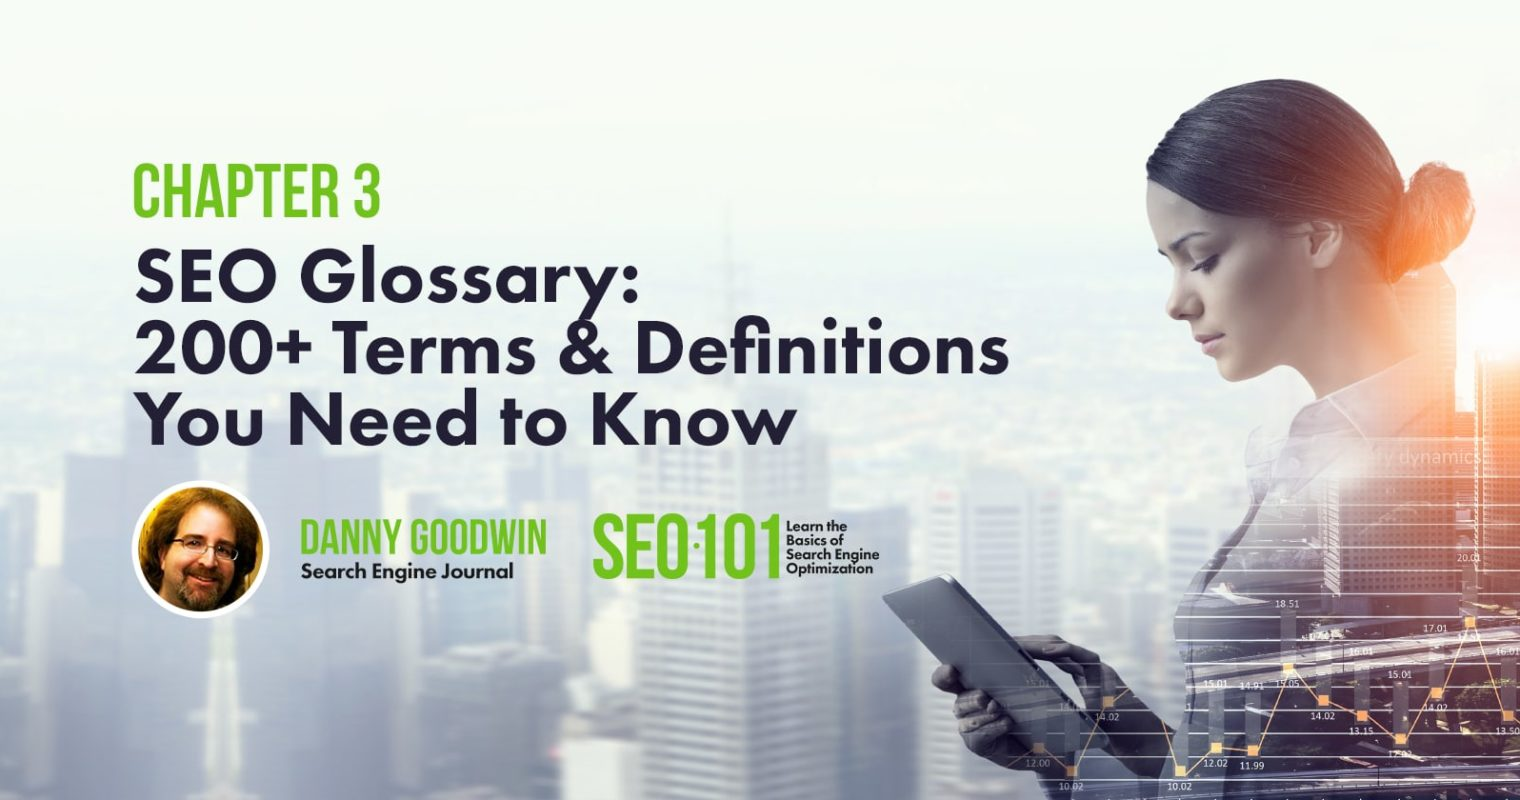 SEO Glossary: 200+ Terms & Definitions You Need to Know